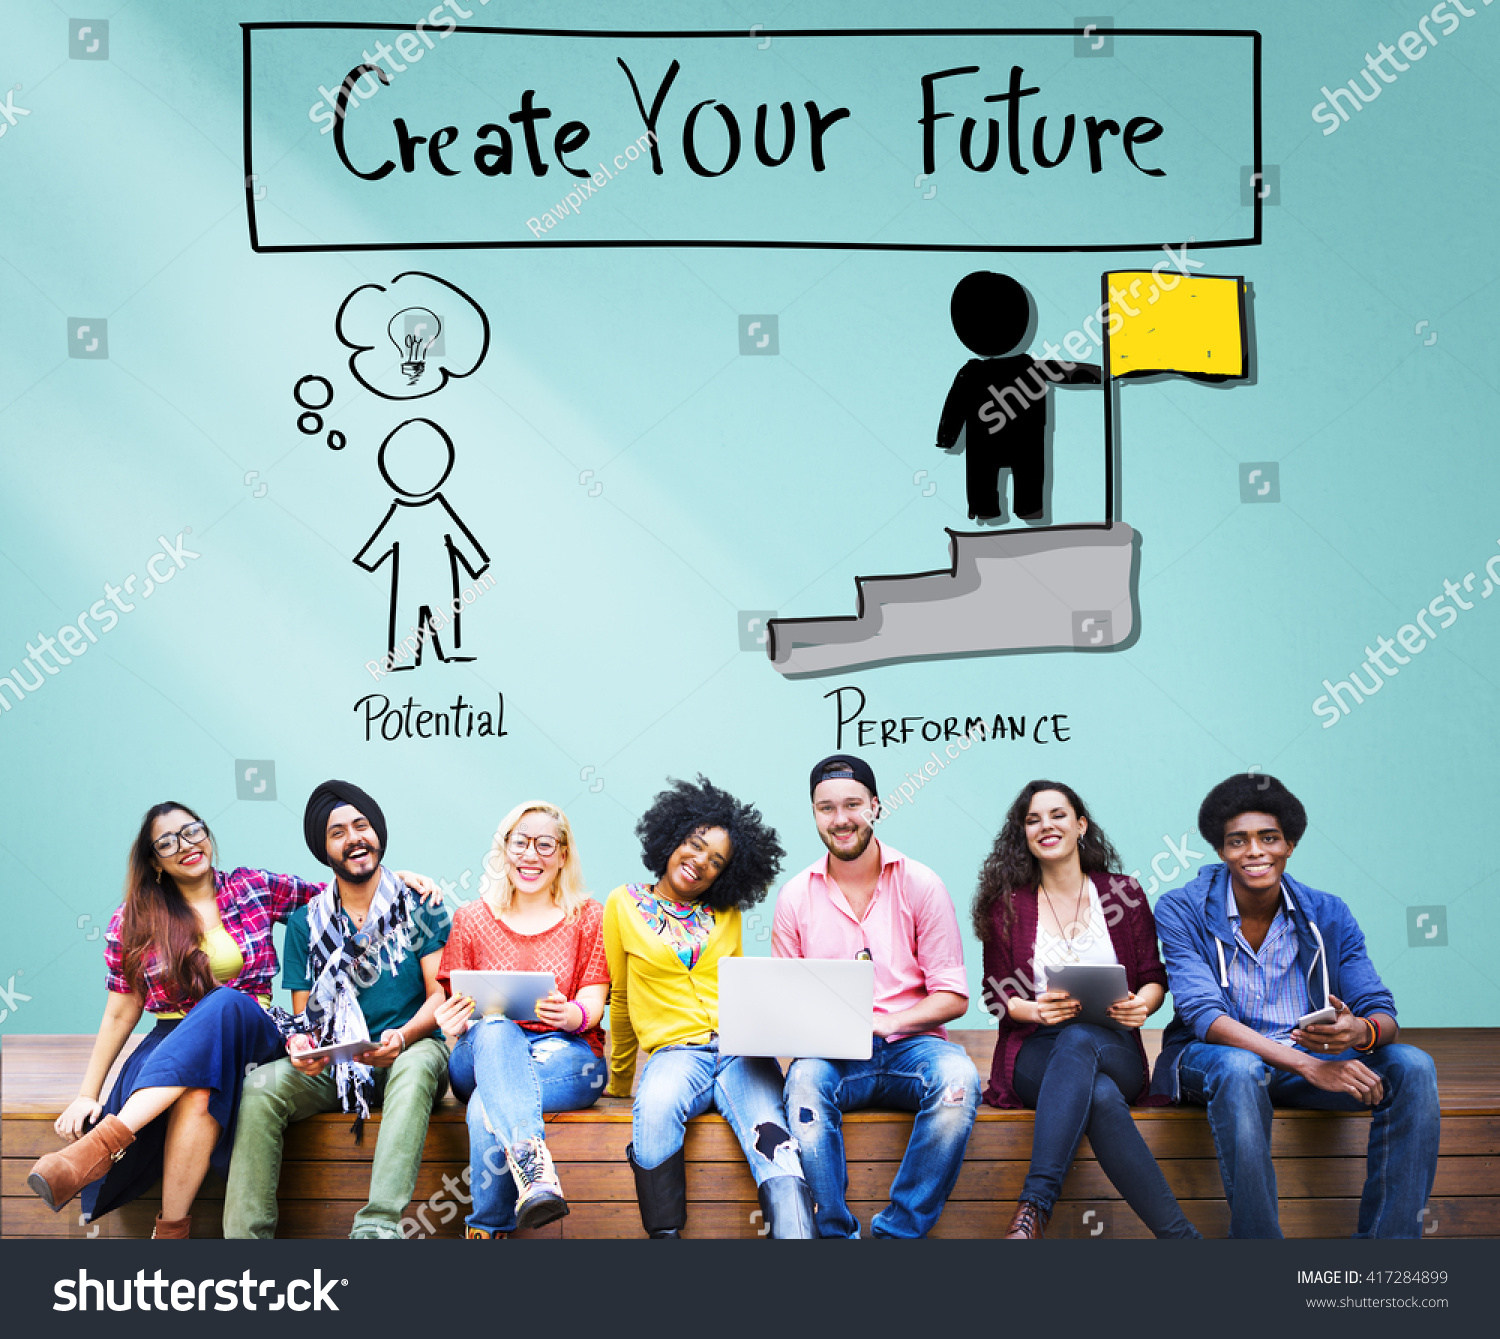 royalty create your future aspiration goals 417284899 stock create your future aspiration goals concept 417284899